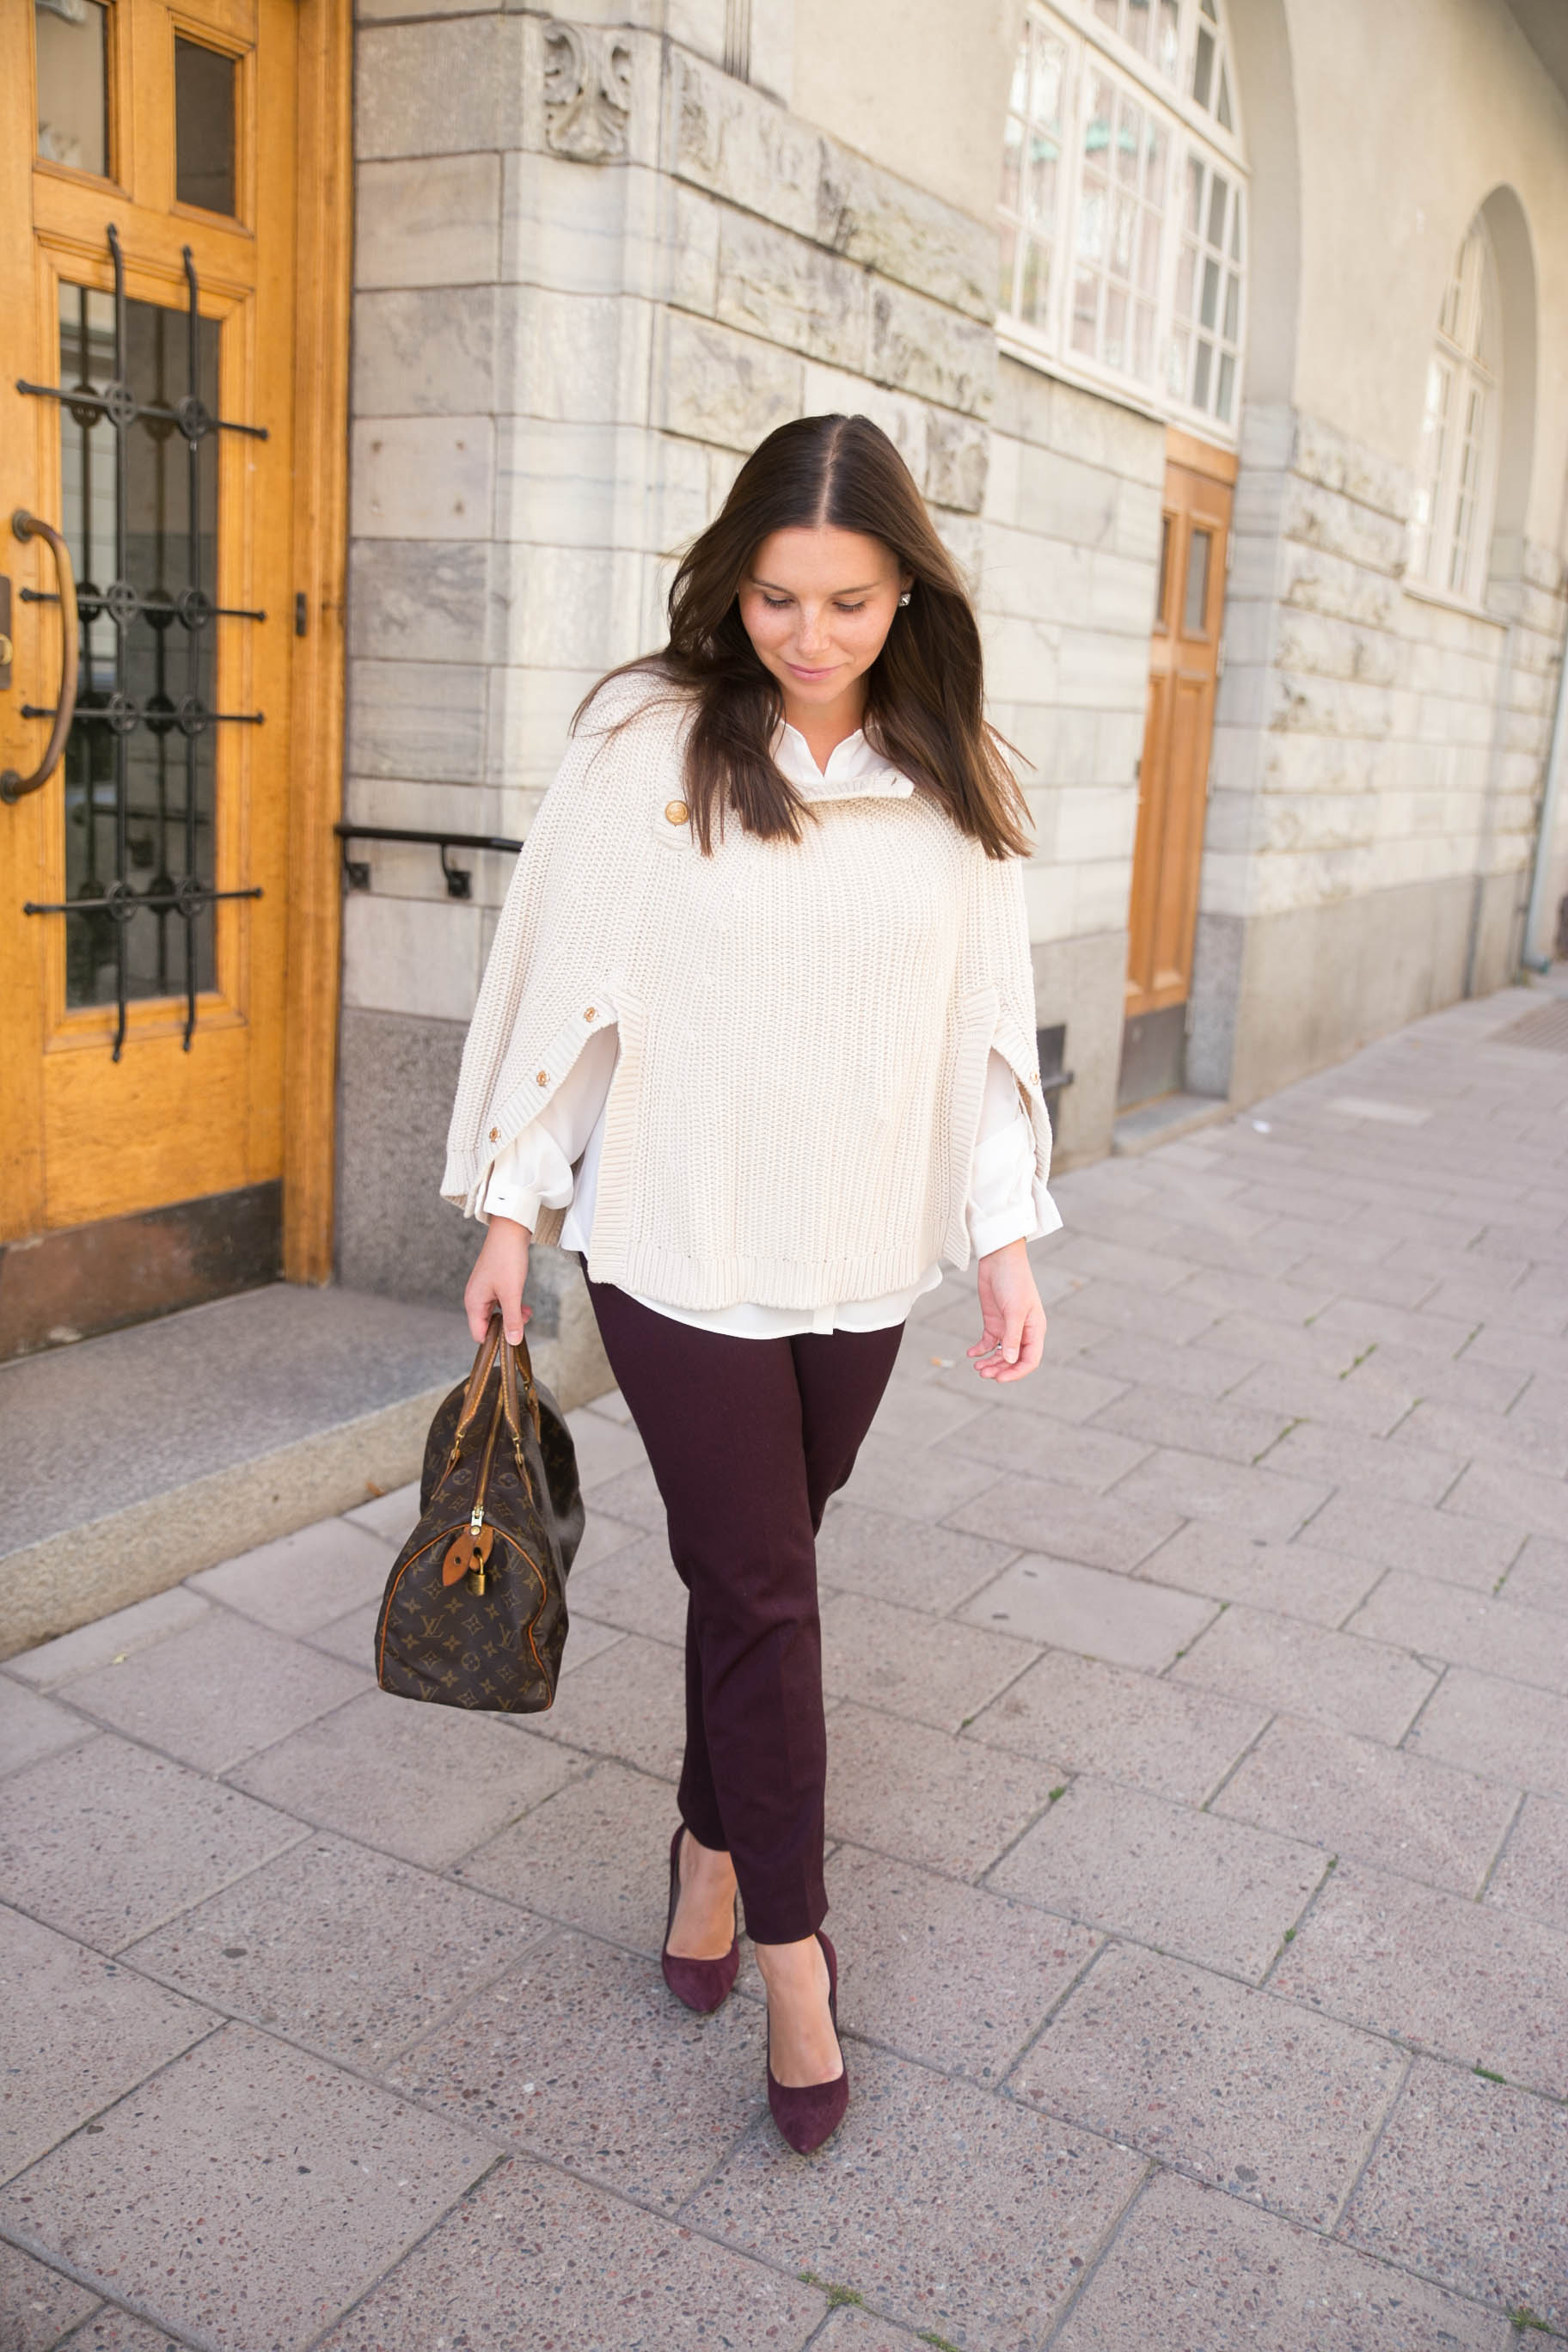 Angelicas Closet Angelica Aurell mode outfit rizzo louis vuitton poncho kate spade.jpg